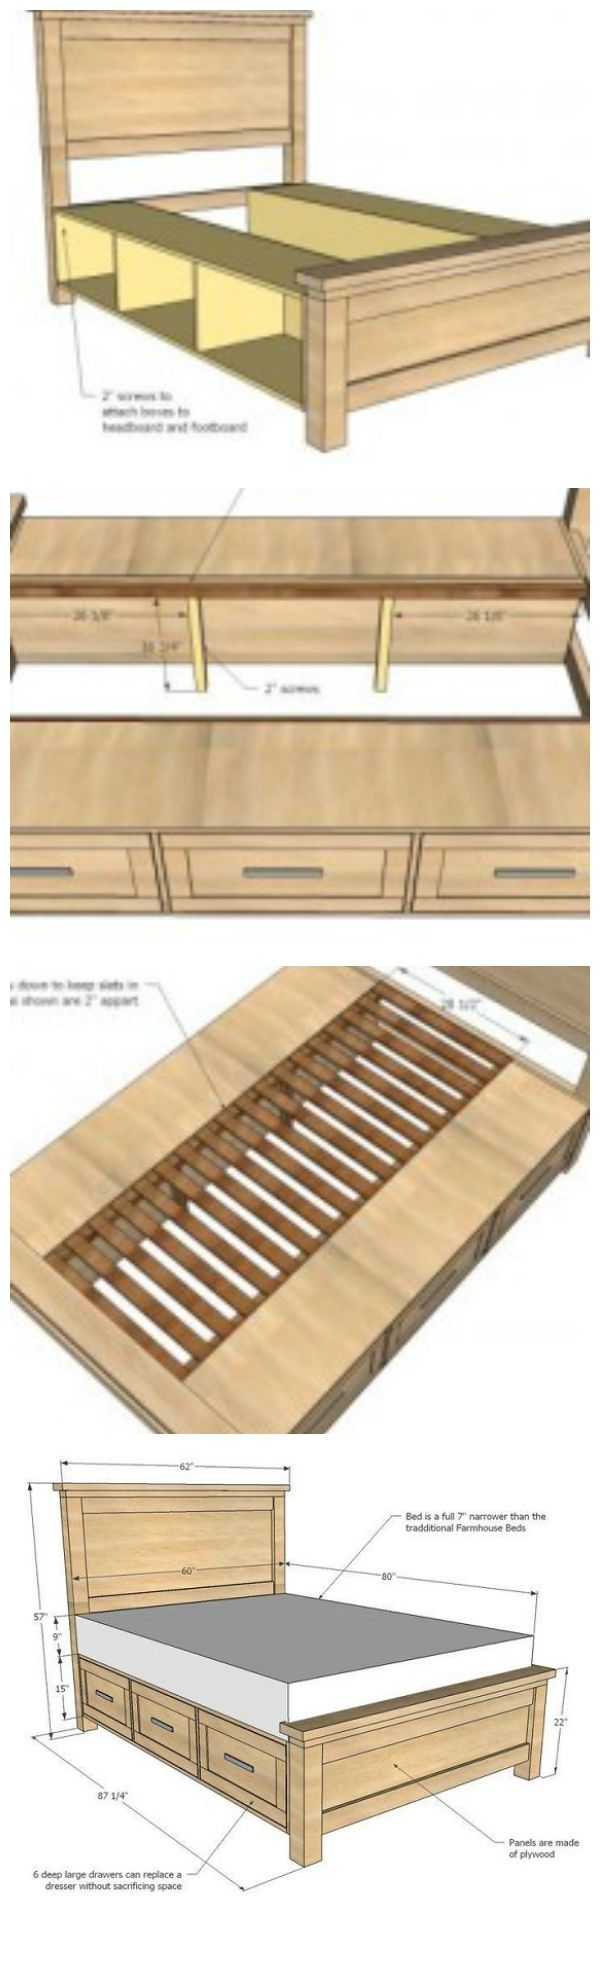 Trundle bed frame - Diy Farmhouse Storage Bed With Storage Drawers